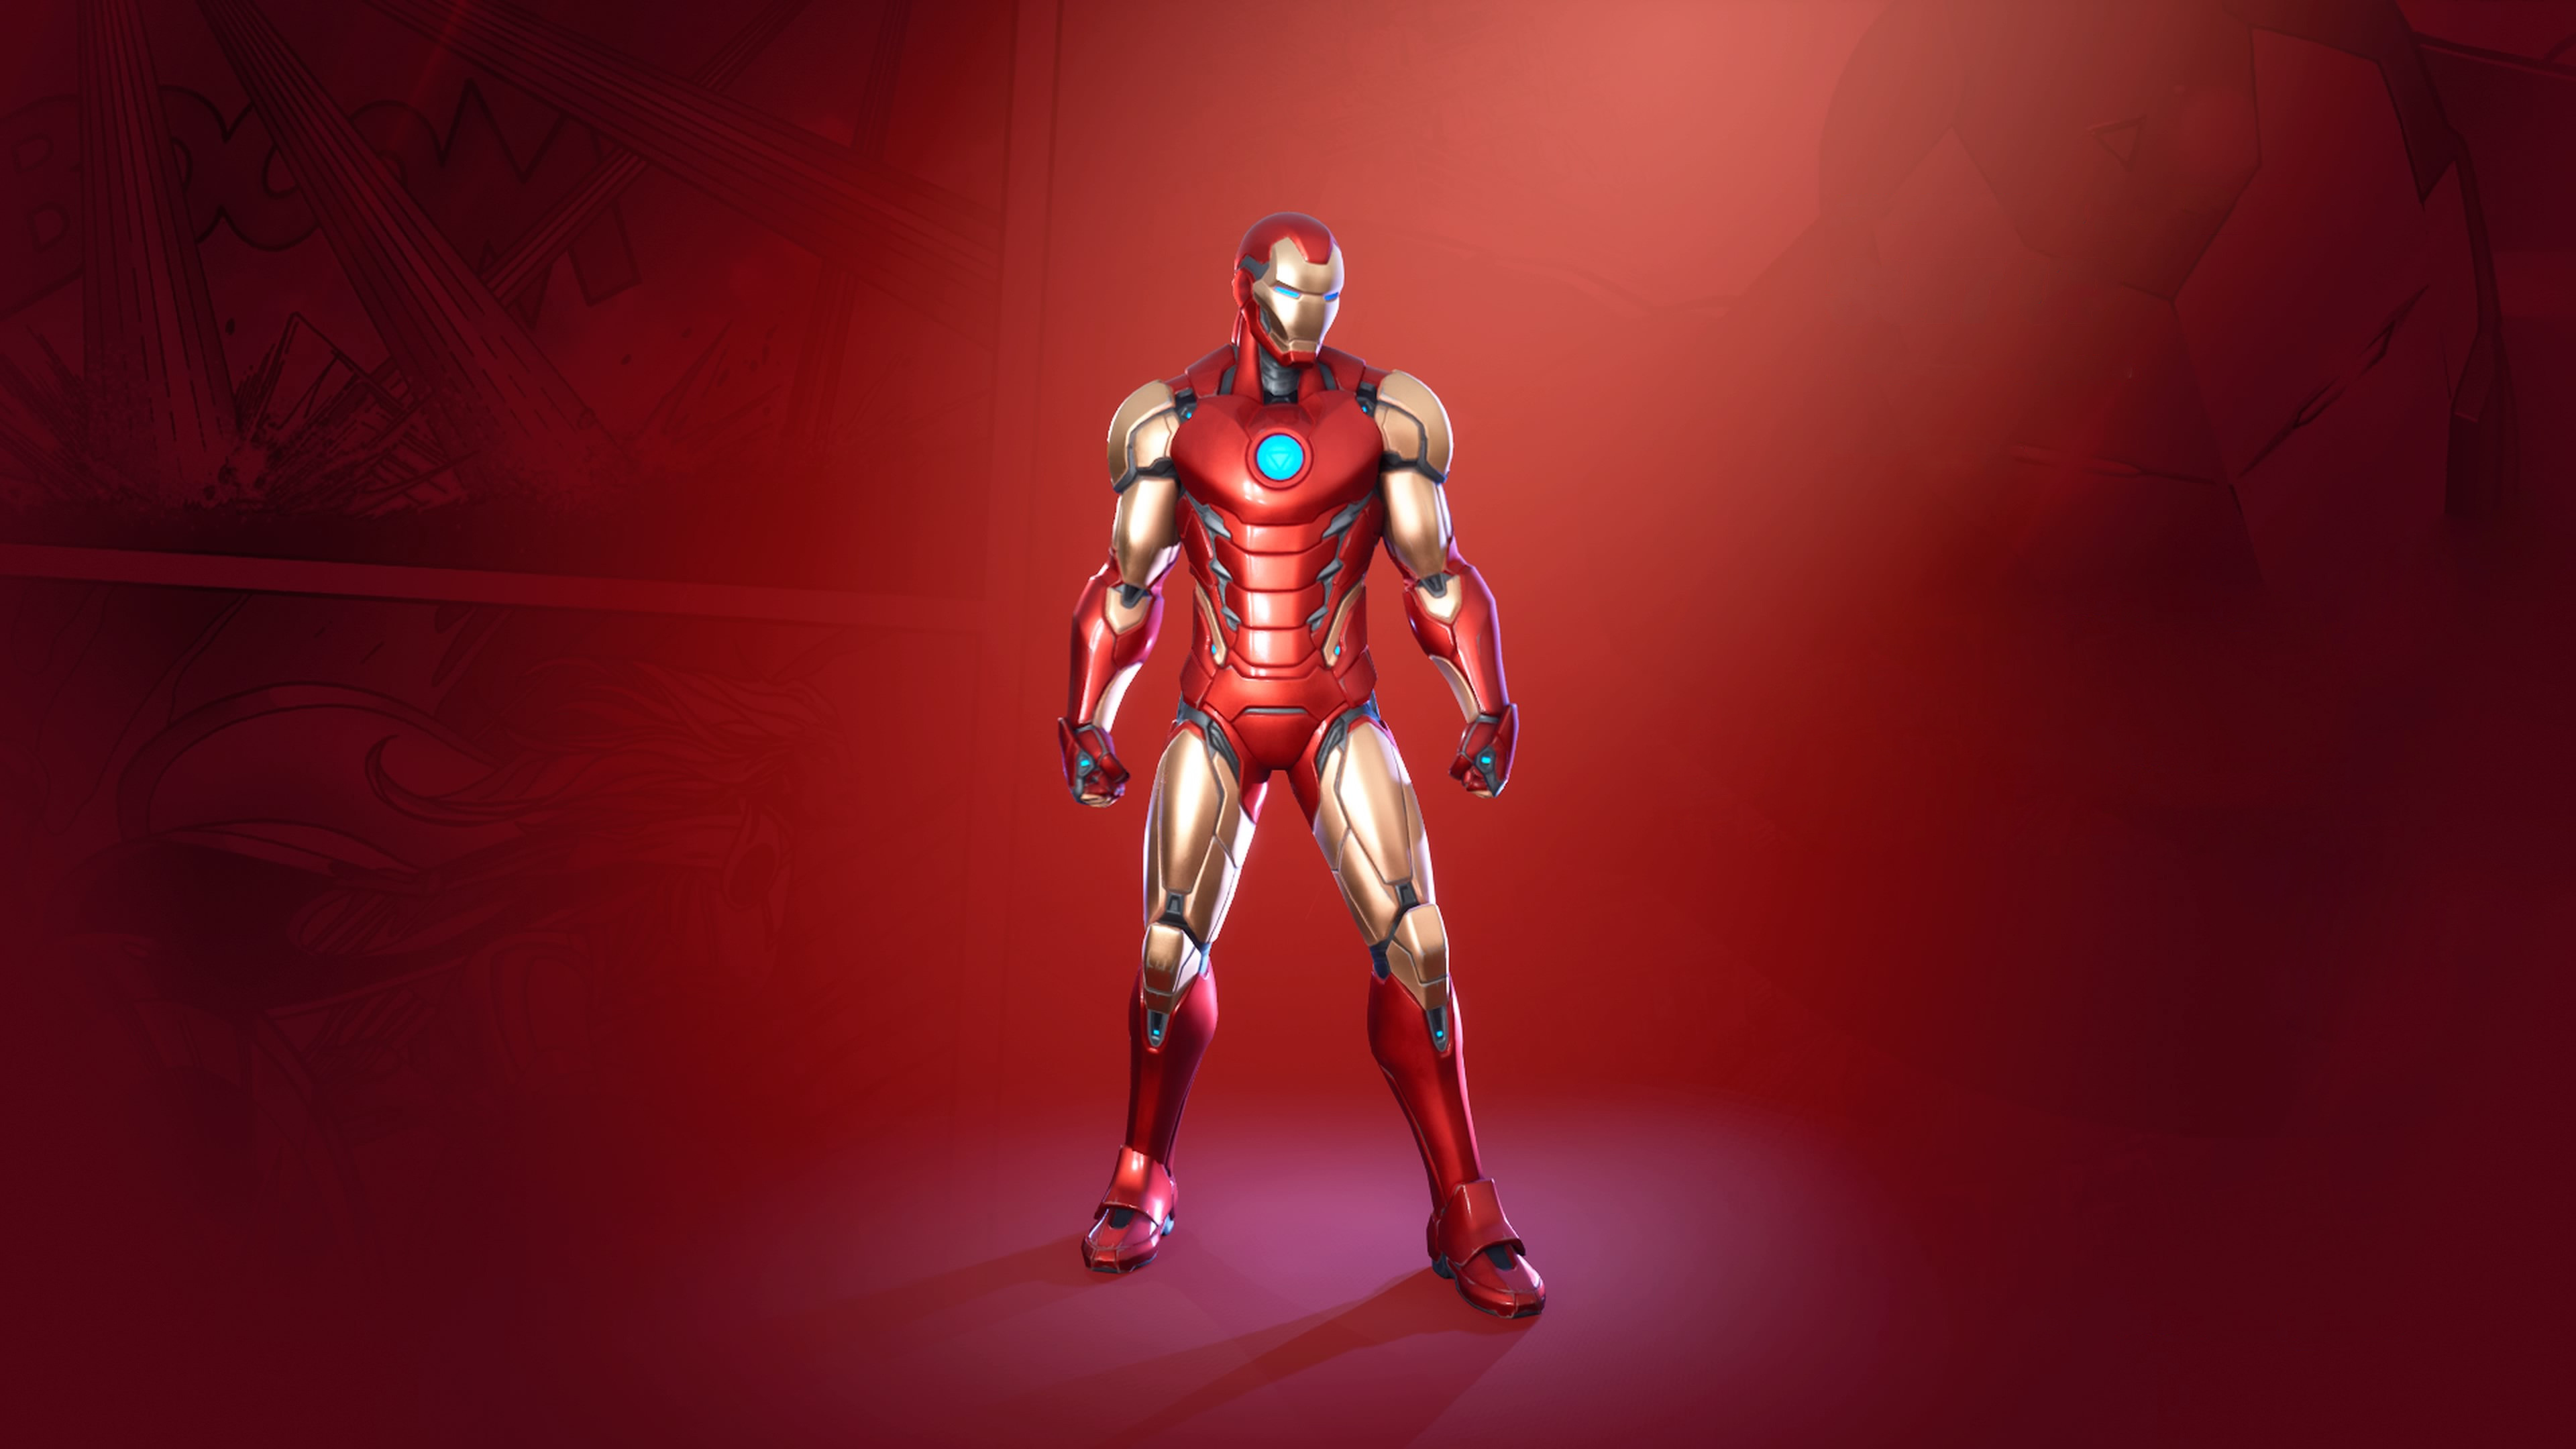 1360x768 Iron Man Fortnite Season 4 Desktop Laptop Hd Wallpaper Hd Games 4k Wallpapers Images Photos And Background